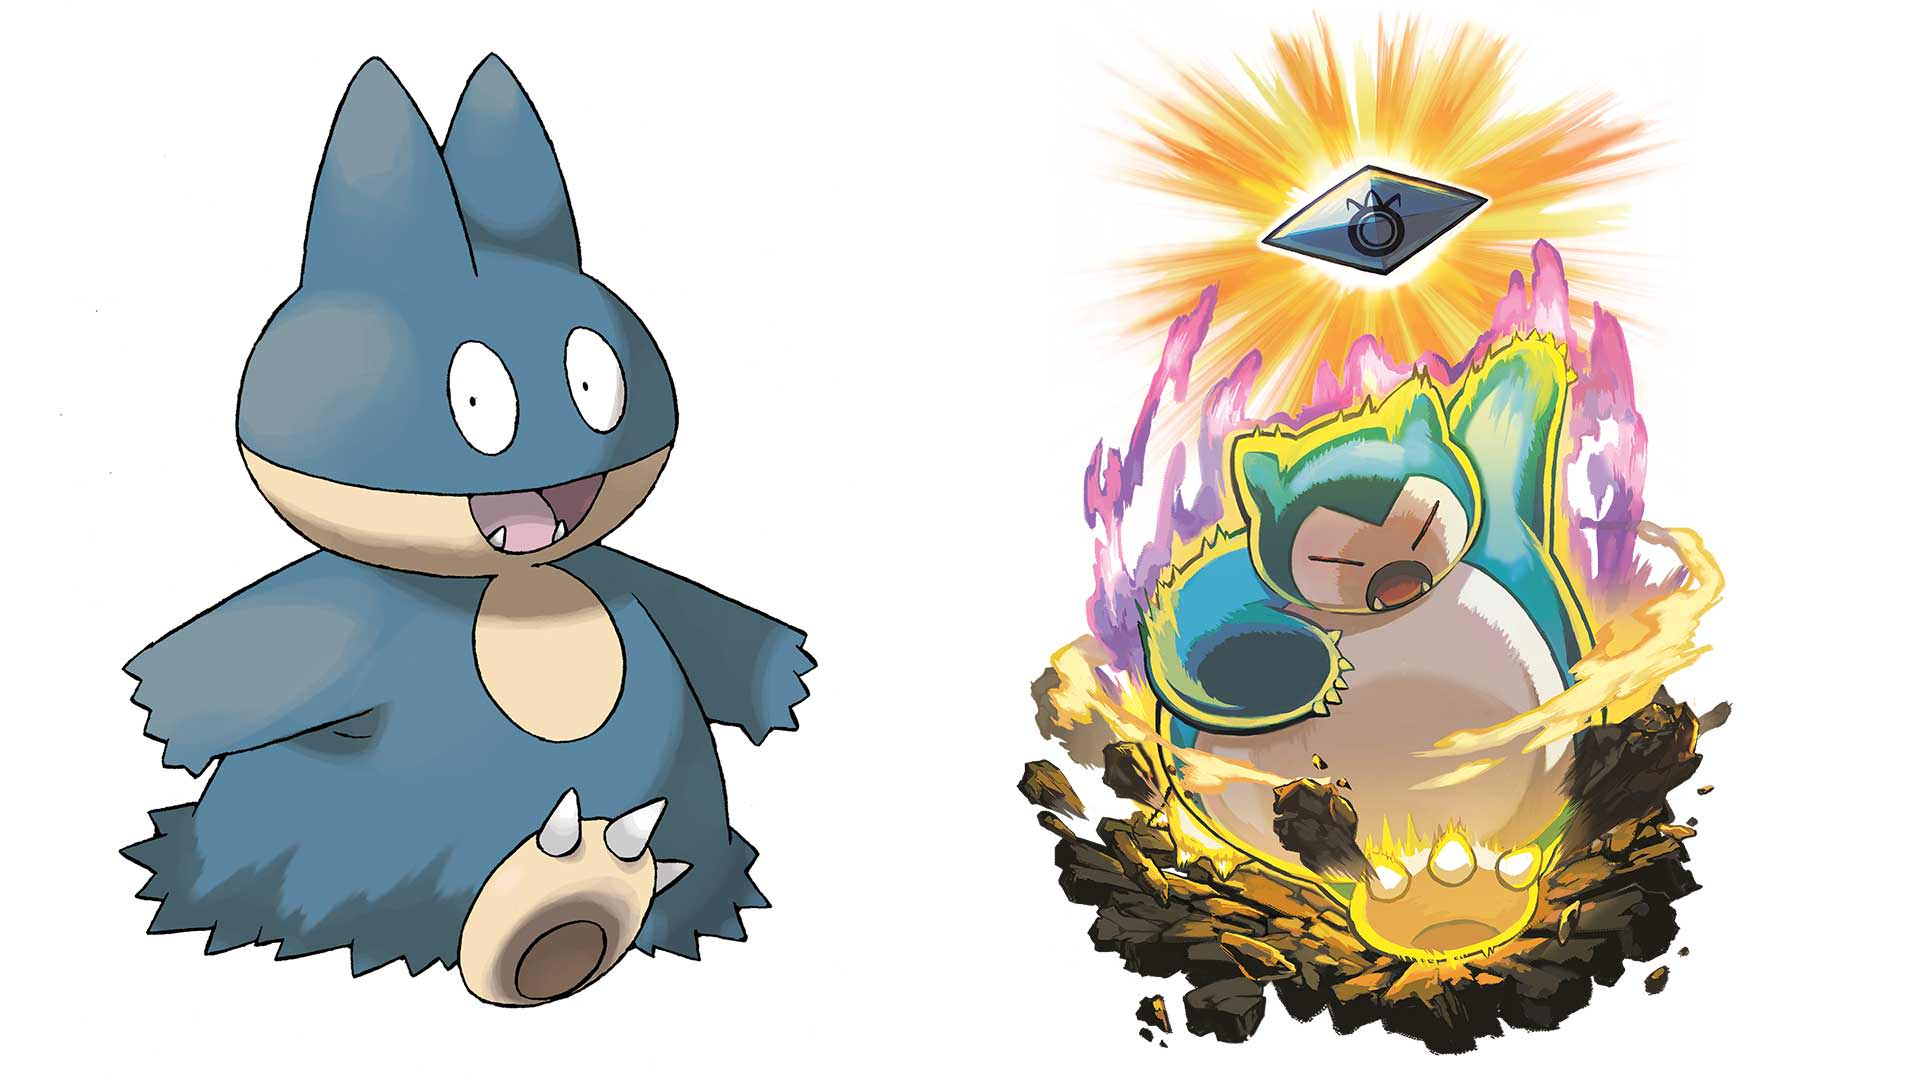 Buy Pokemon Sun & Moon Early And Get Munchlax Evolving Snorlax - VGU